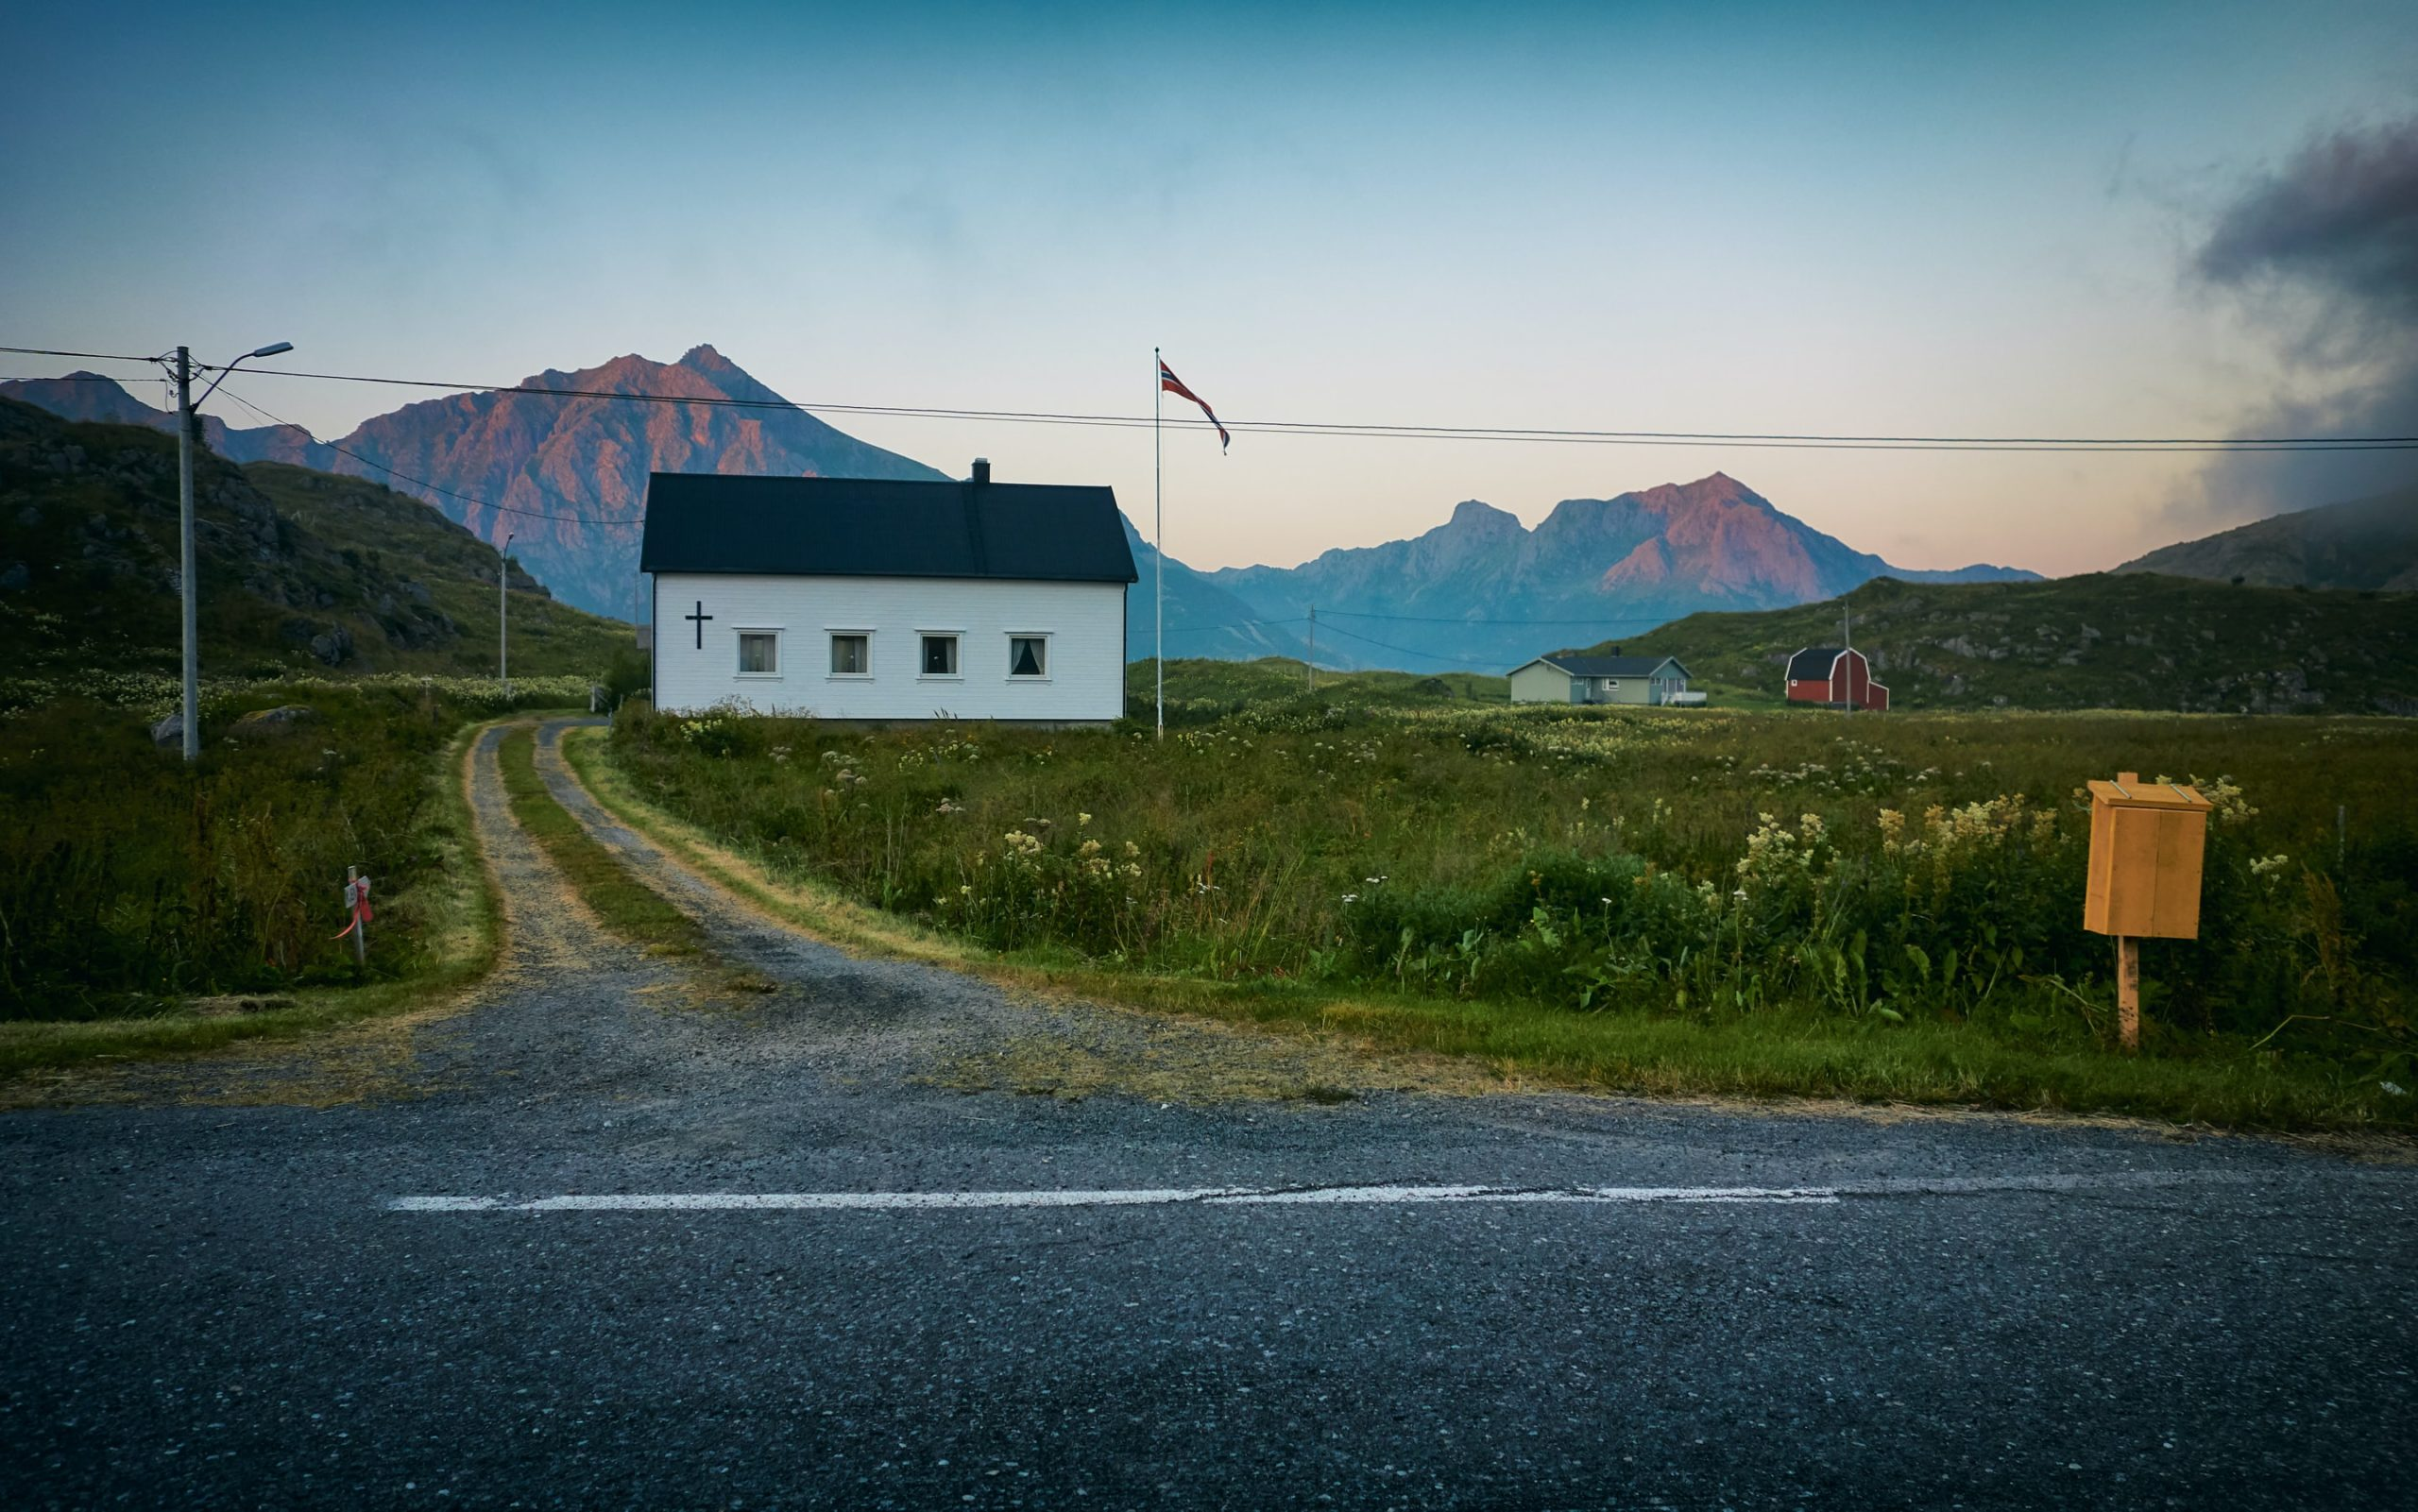 Countrysidde road and house. Photo by Vidar Nordlin-Mathisen taken at Hovden, Norway.